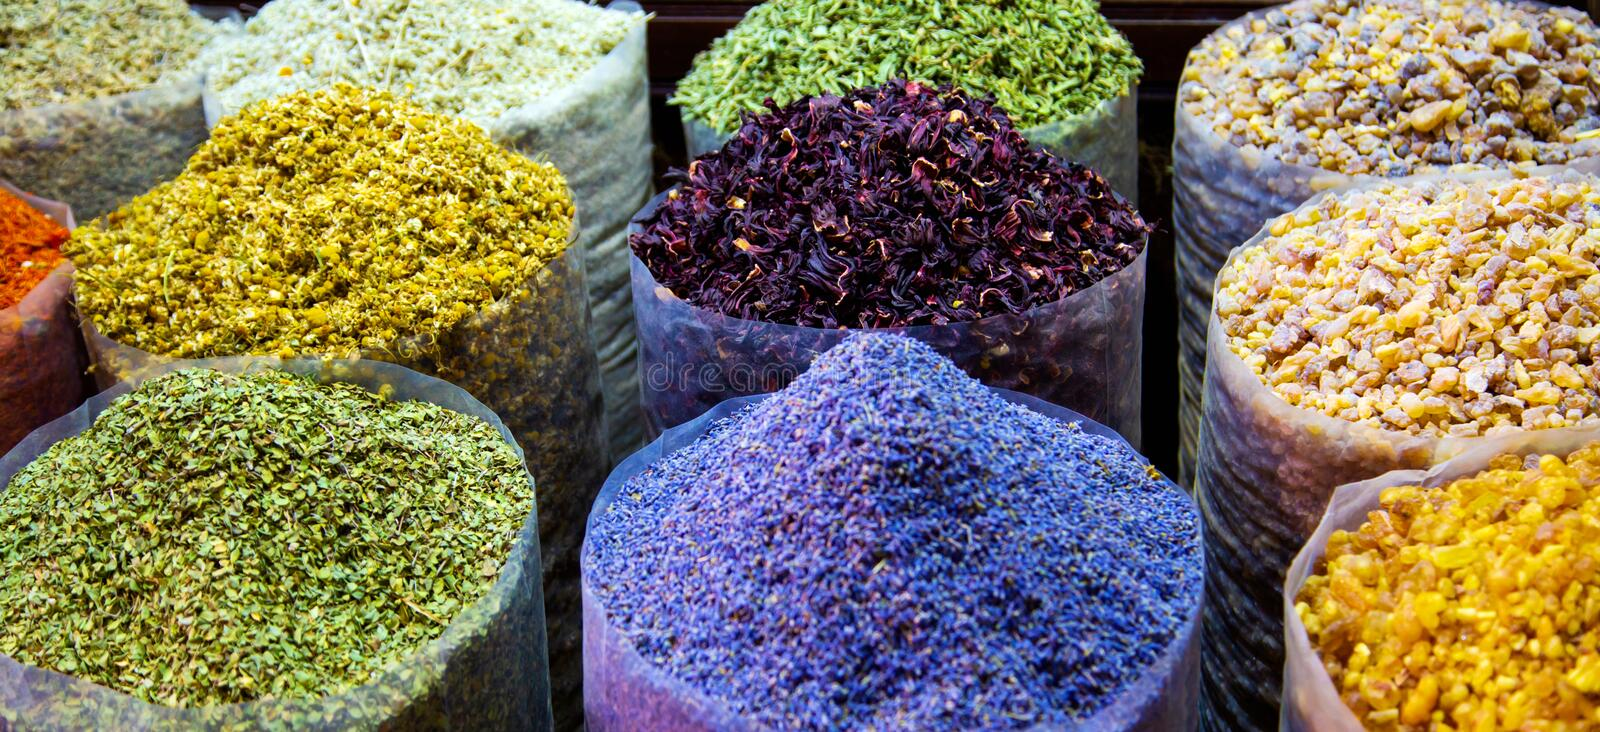 Middle East Spice Market   onhollieday   Flickr   Middle East Spice Market